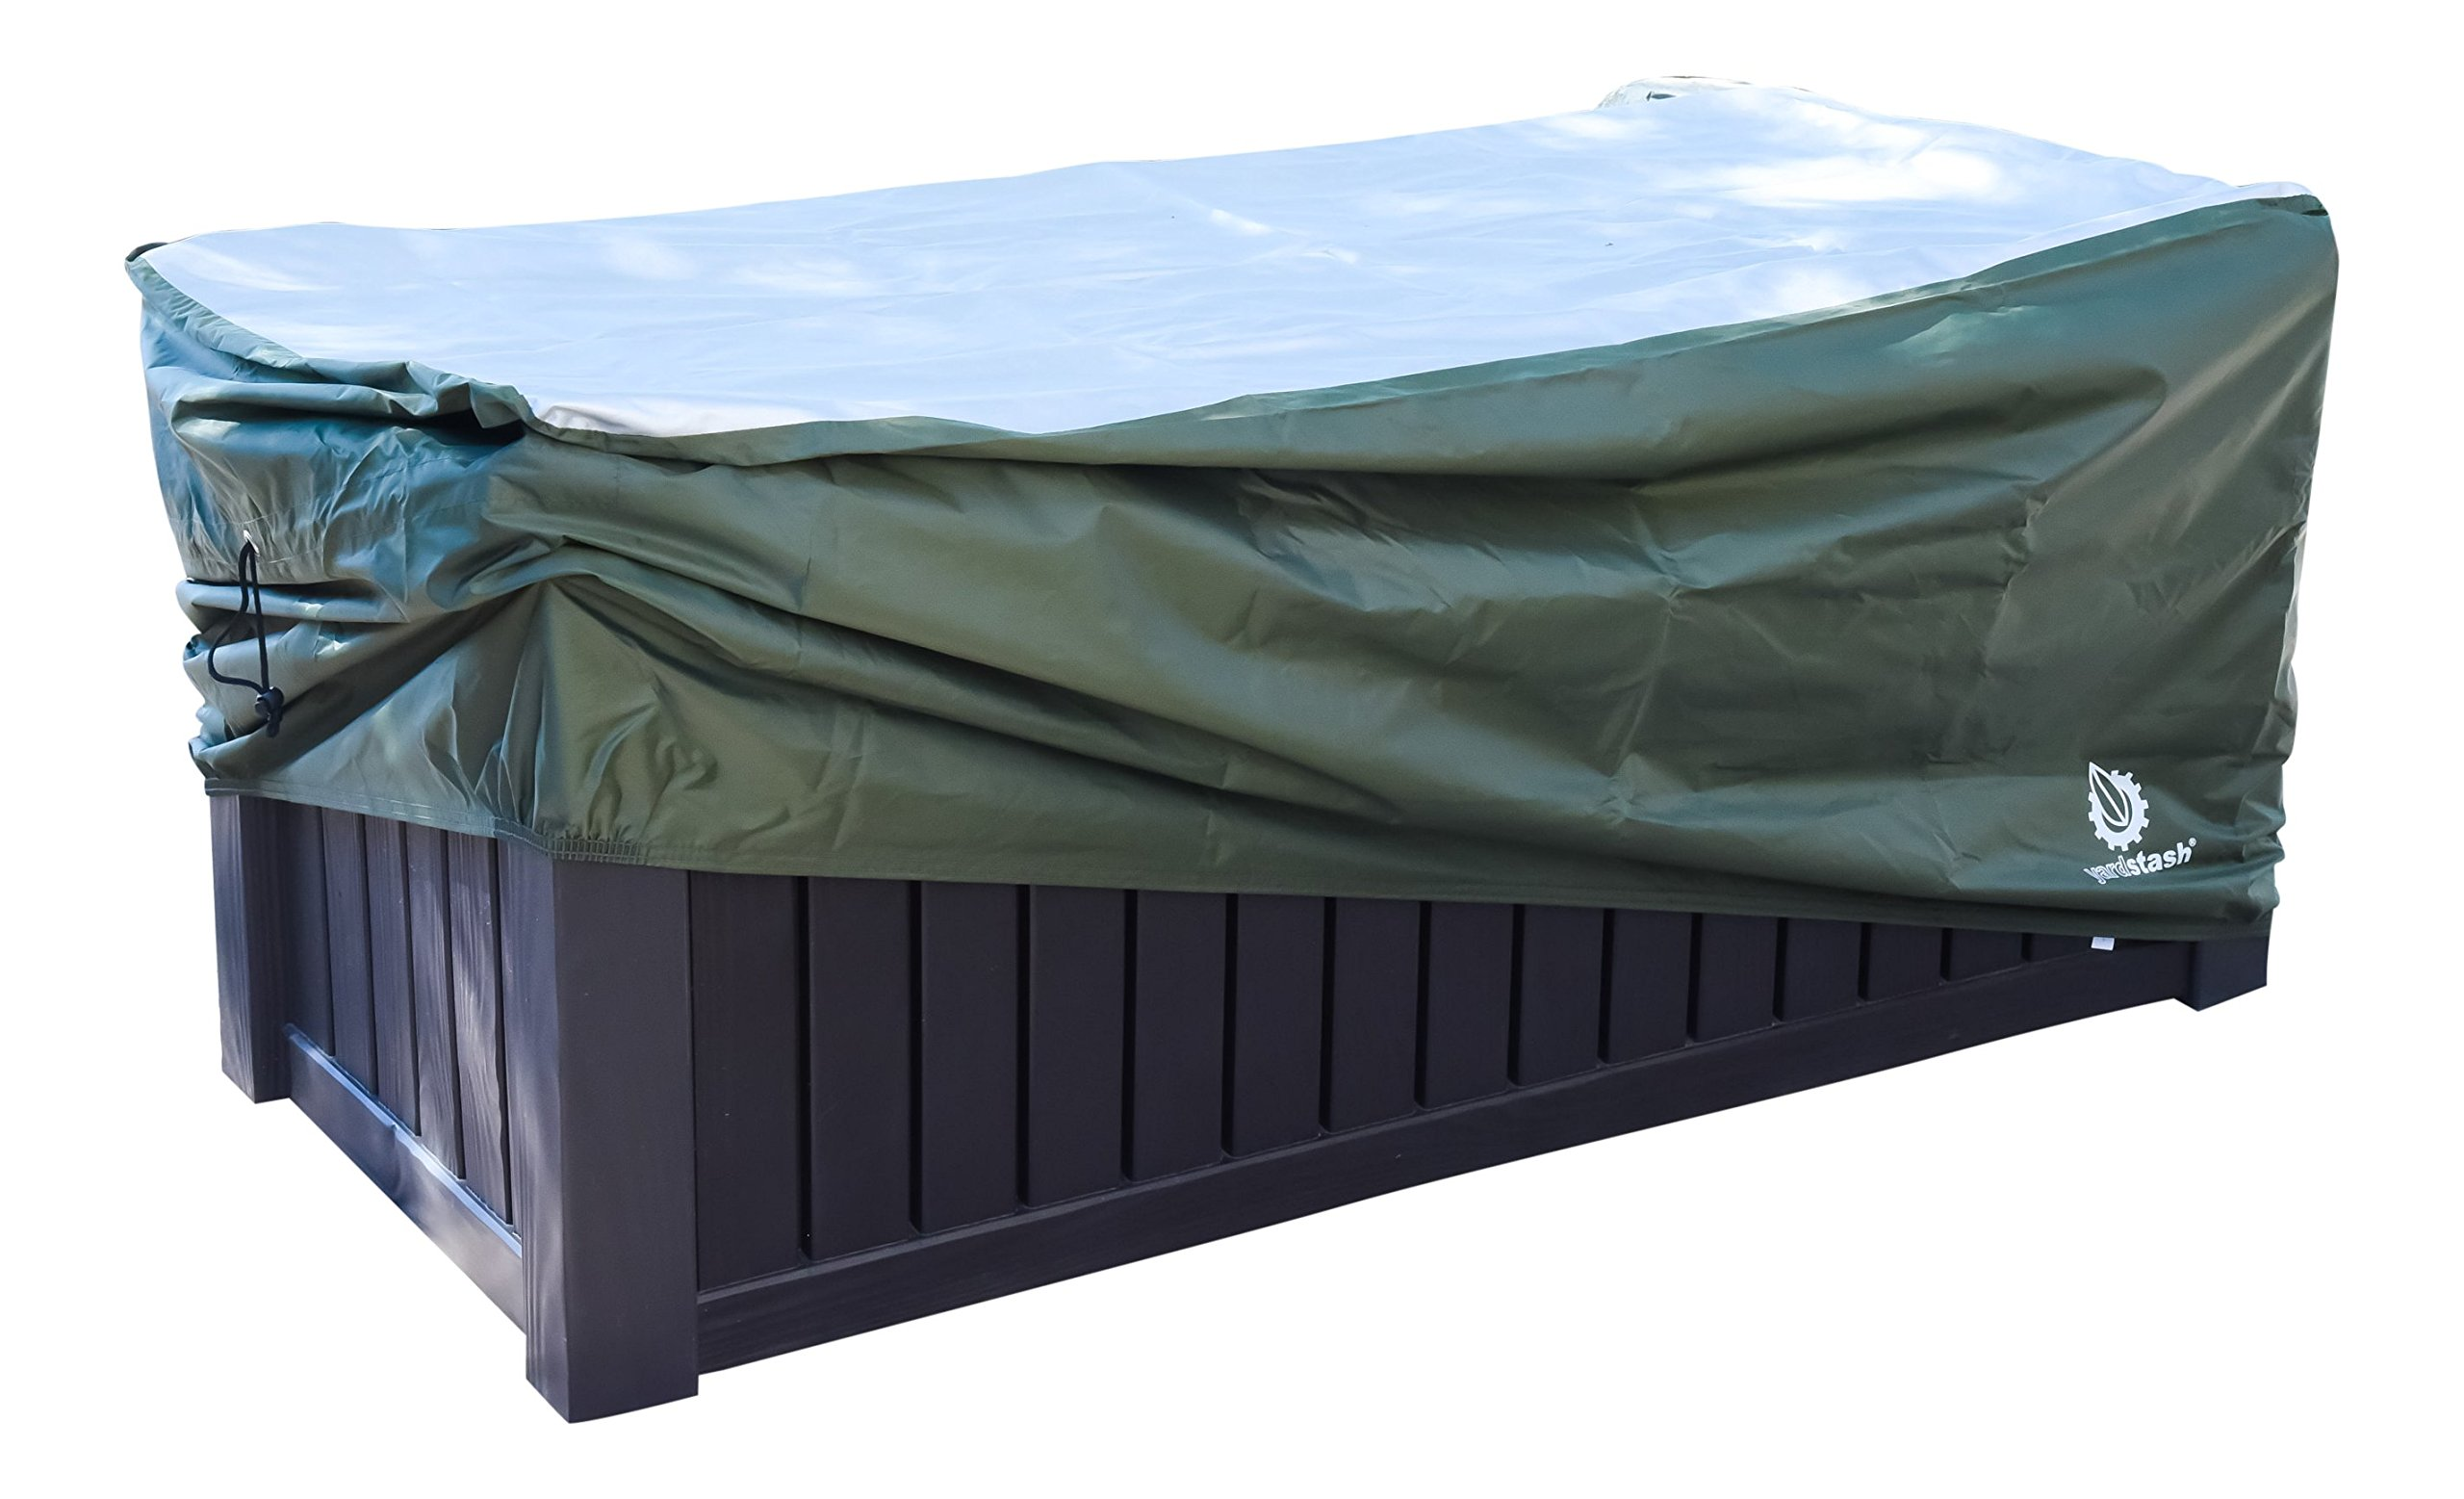 YardStash Deck Box Cover XXL to Protect Extra Wide Deck Boxes: Keter Westwood Deck Box Cover, Keter Rockwood Deck Box Cover, Keter Brightwood Deck Box Cover, Keter Sumatra Deck Box Cover & More by YardStash